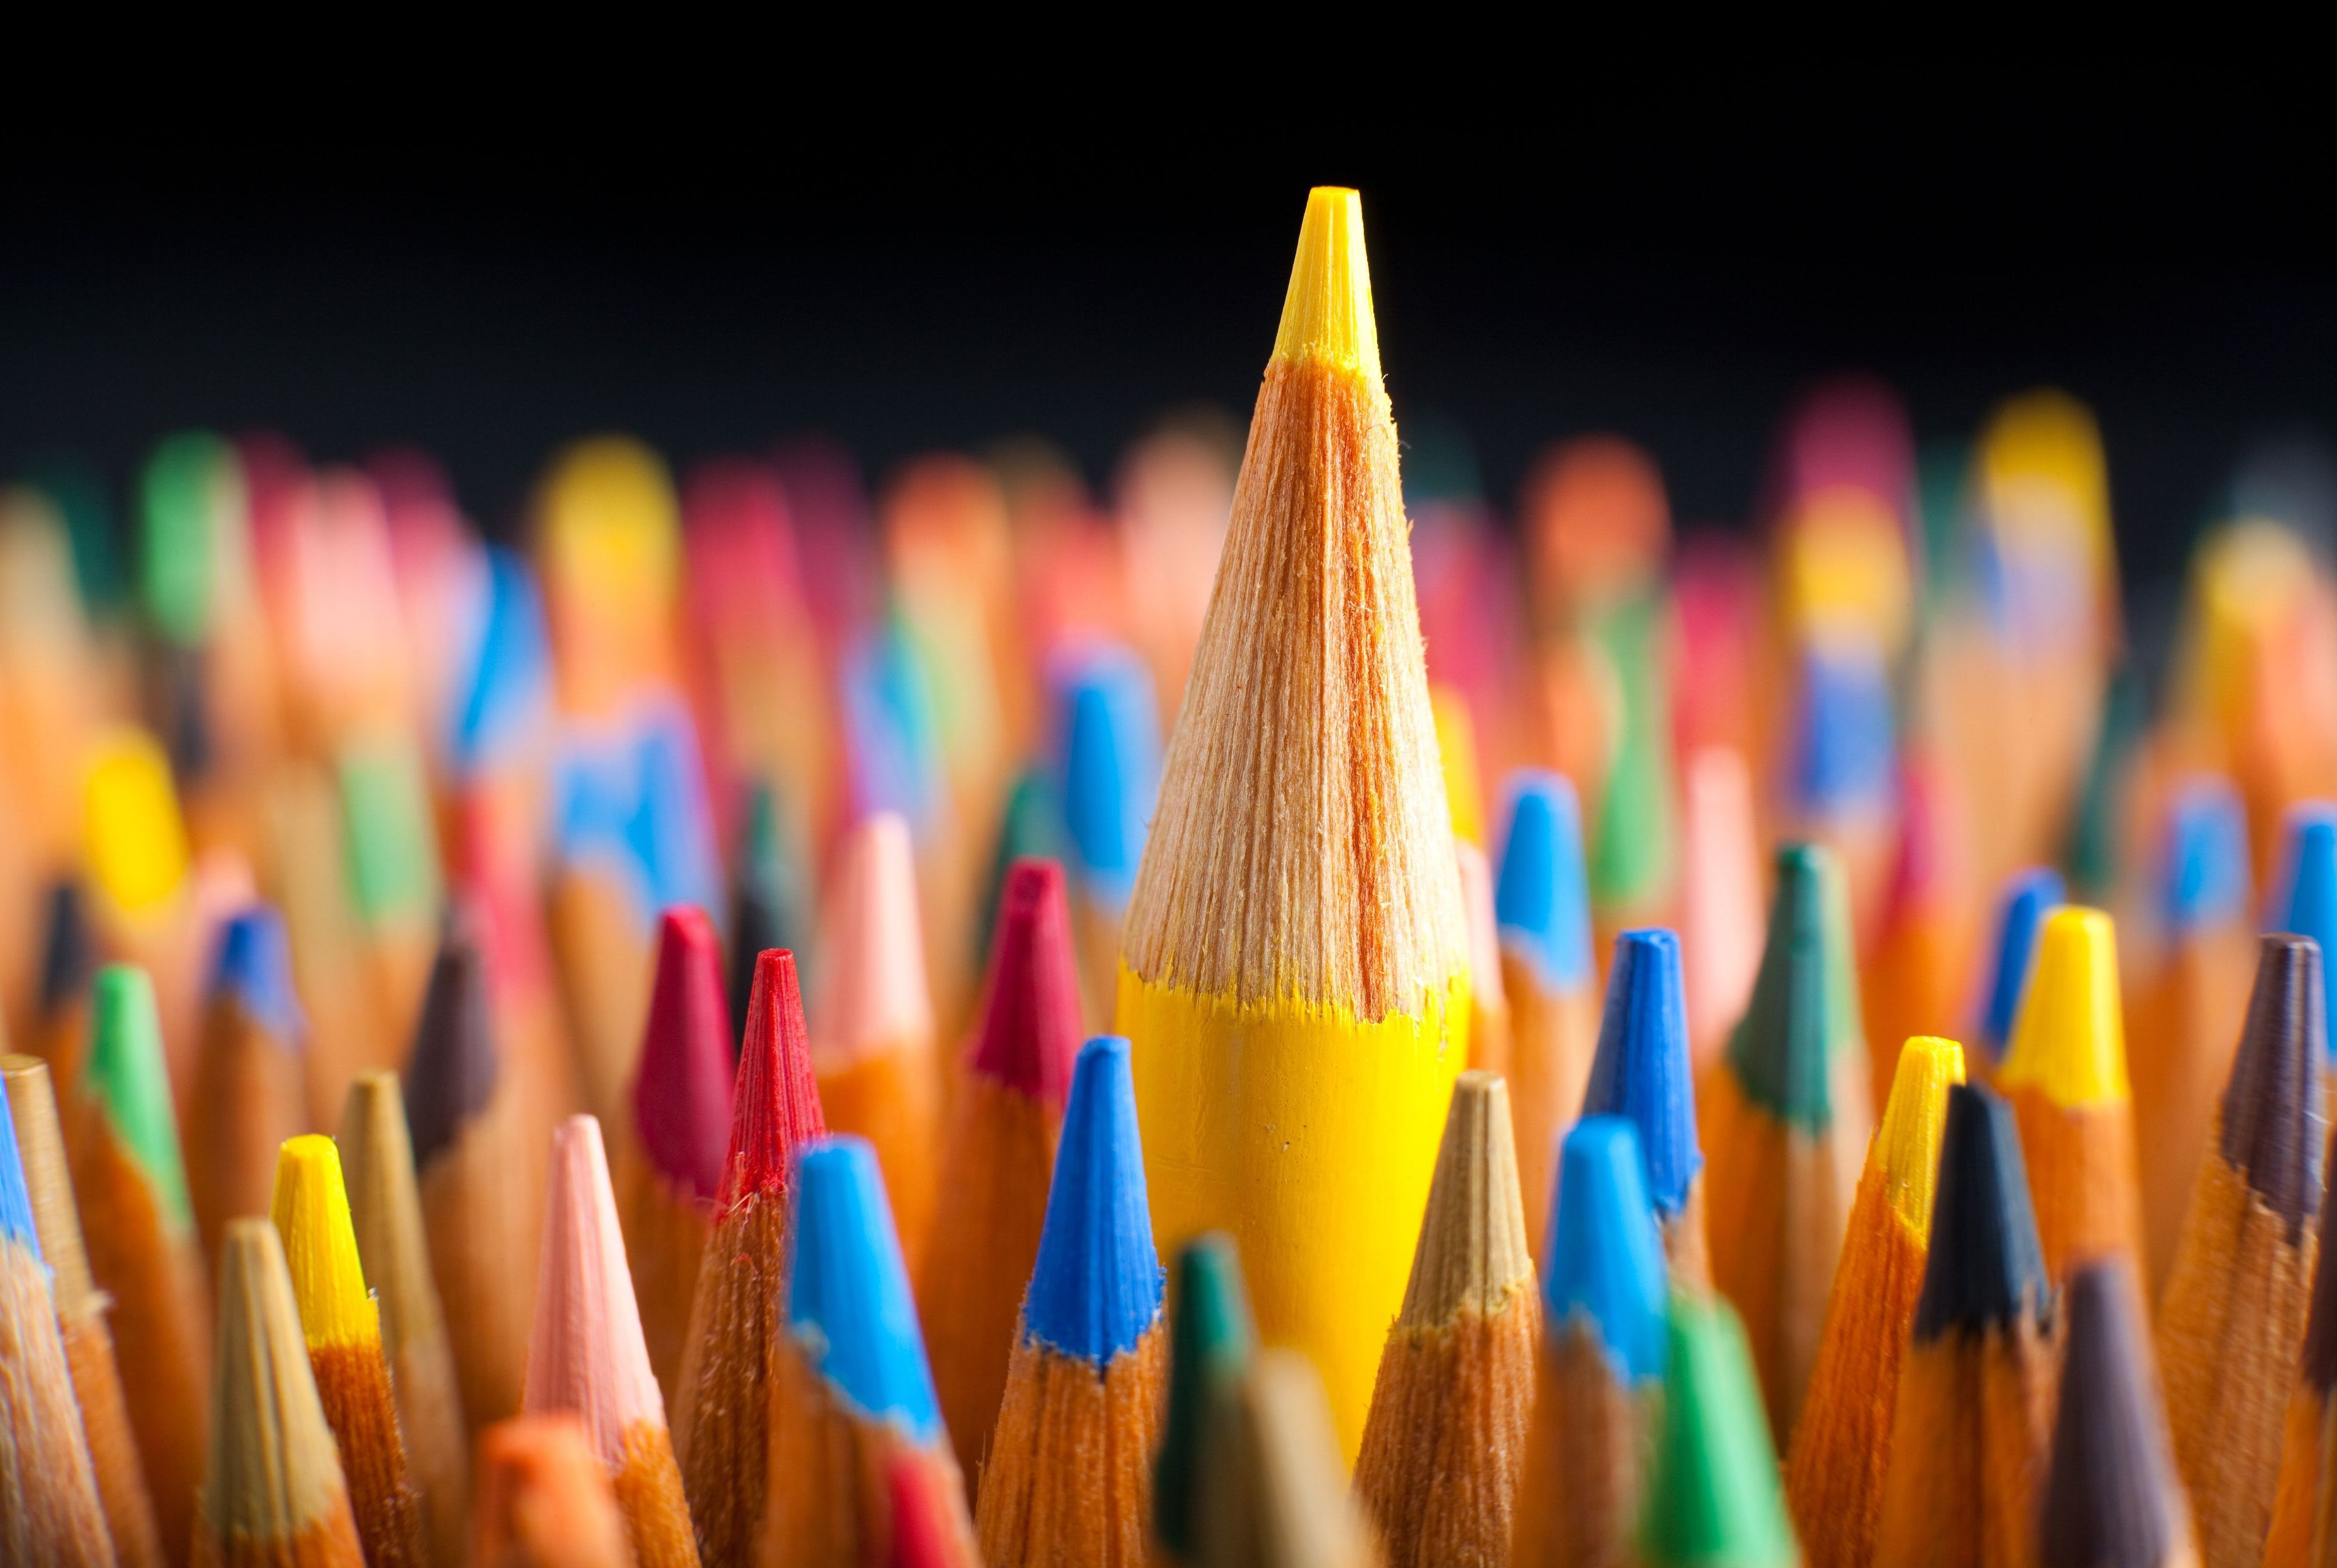 10 Colored Pencil Techniques to Enhance Your Drawings